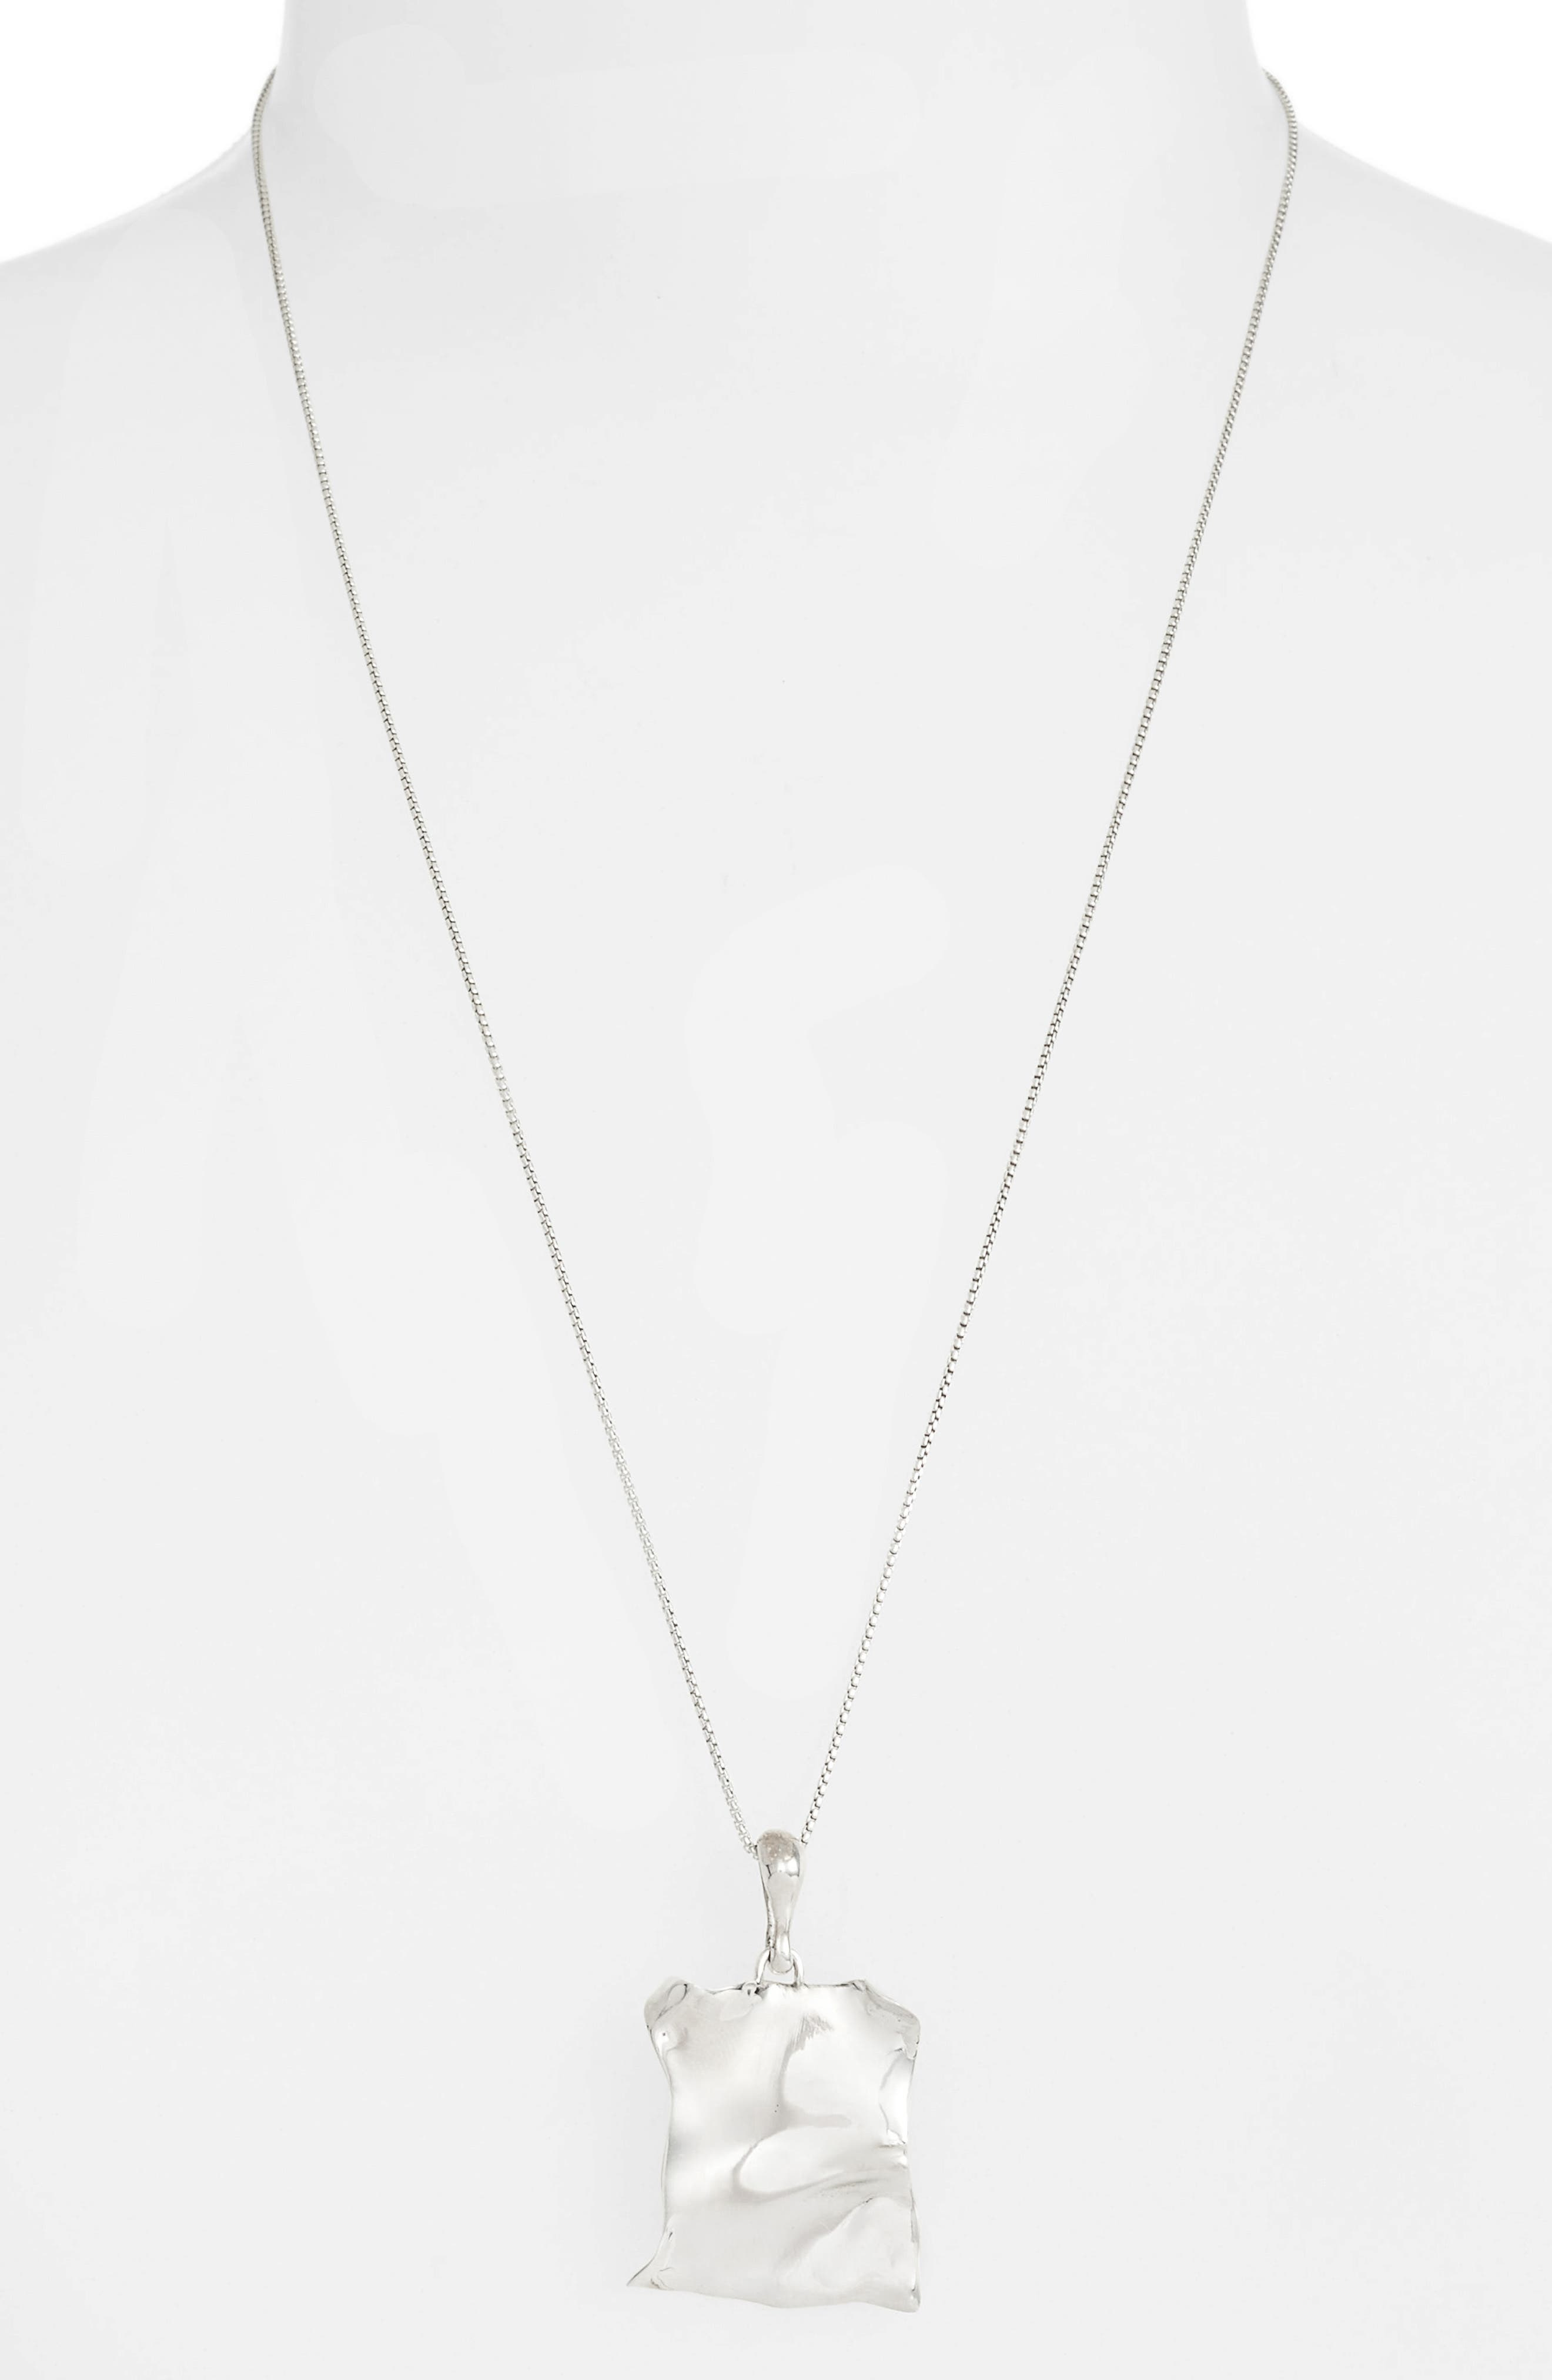 FARIS Tag Pendant Necklace in Sterling Silver